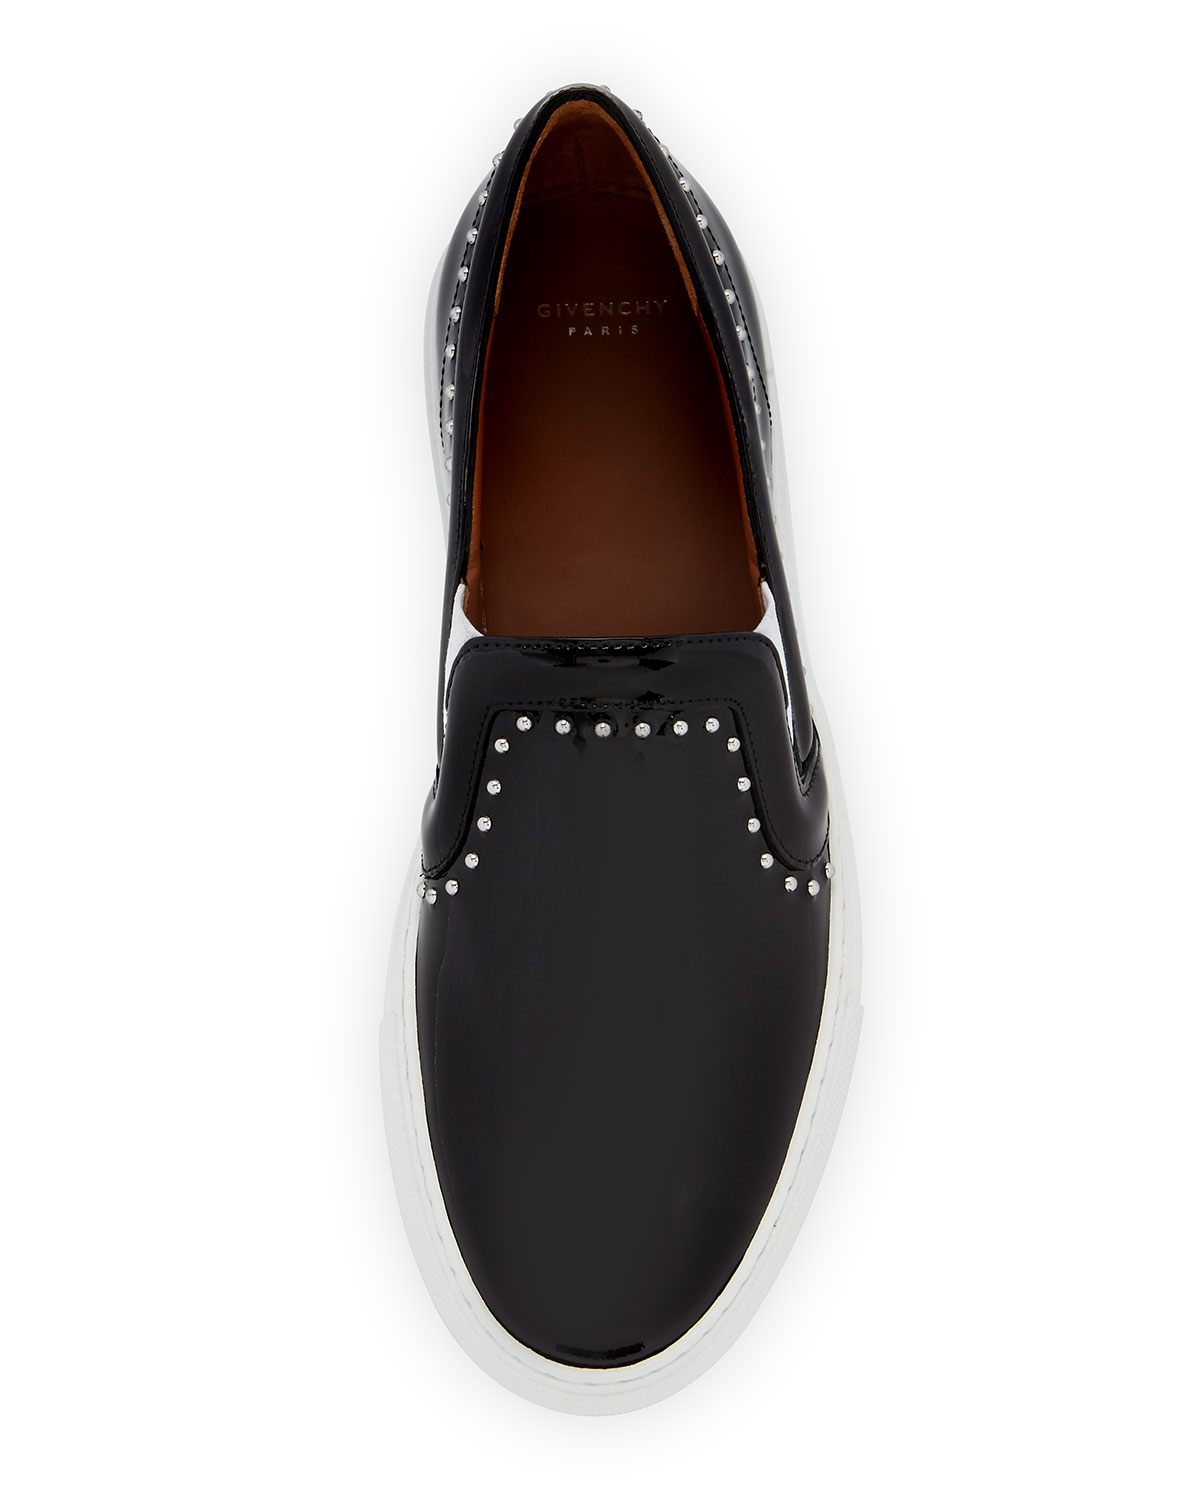 replica shoes men - Givenchy Studded Patent Leather Skate Shoe in Black | Lyst